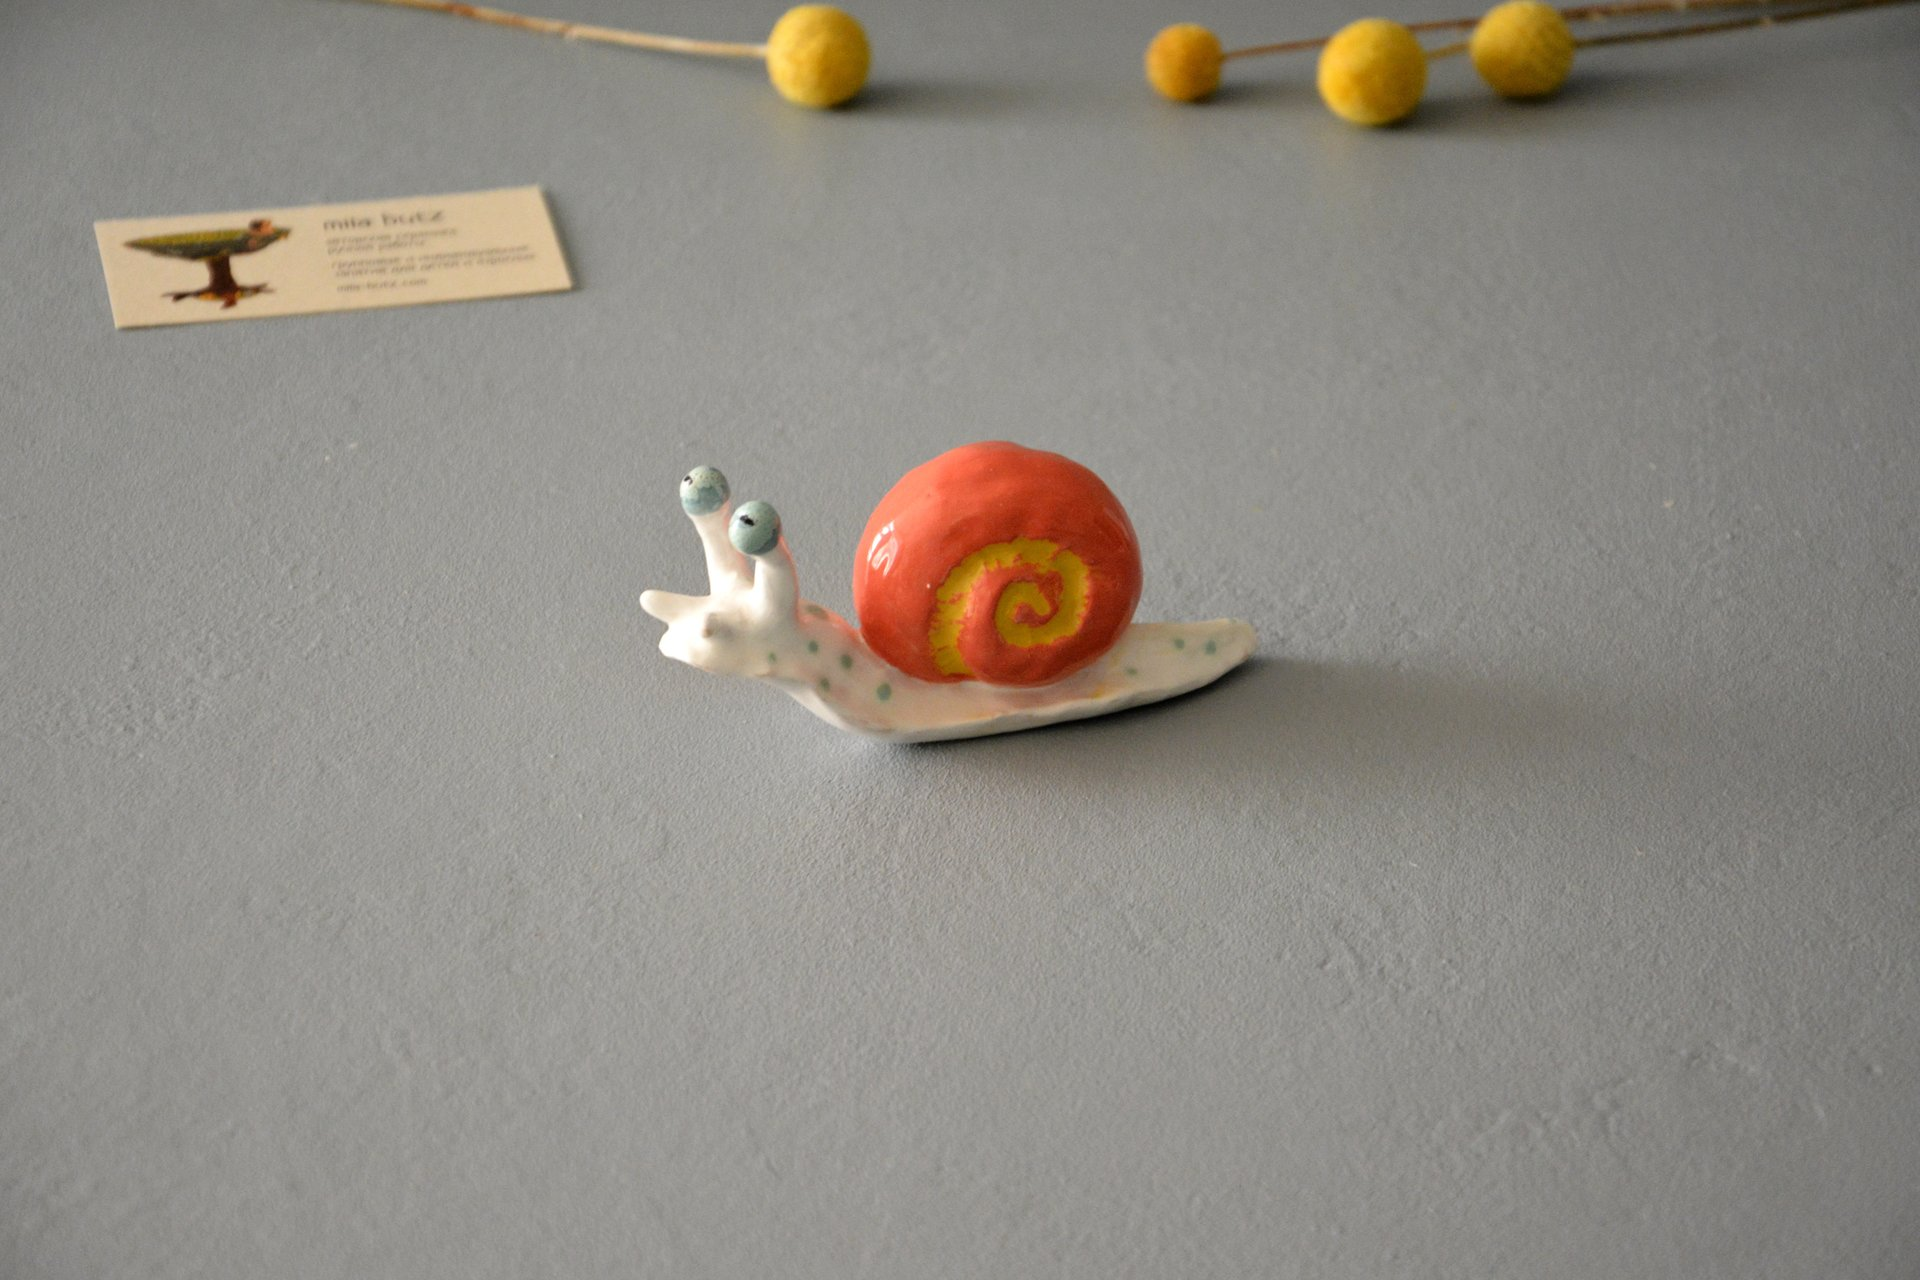 The figurine of a Cochlea is red-white, height - 4 cm, photo 4 of 6.